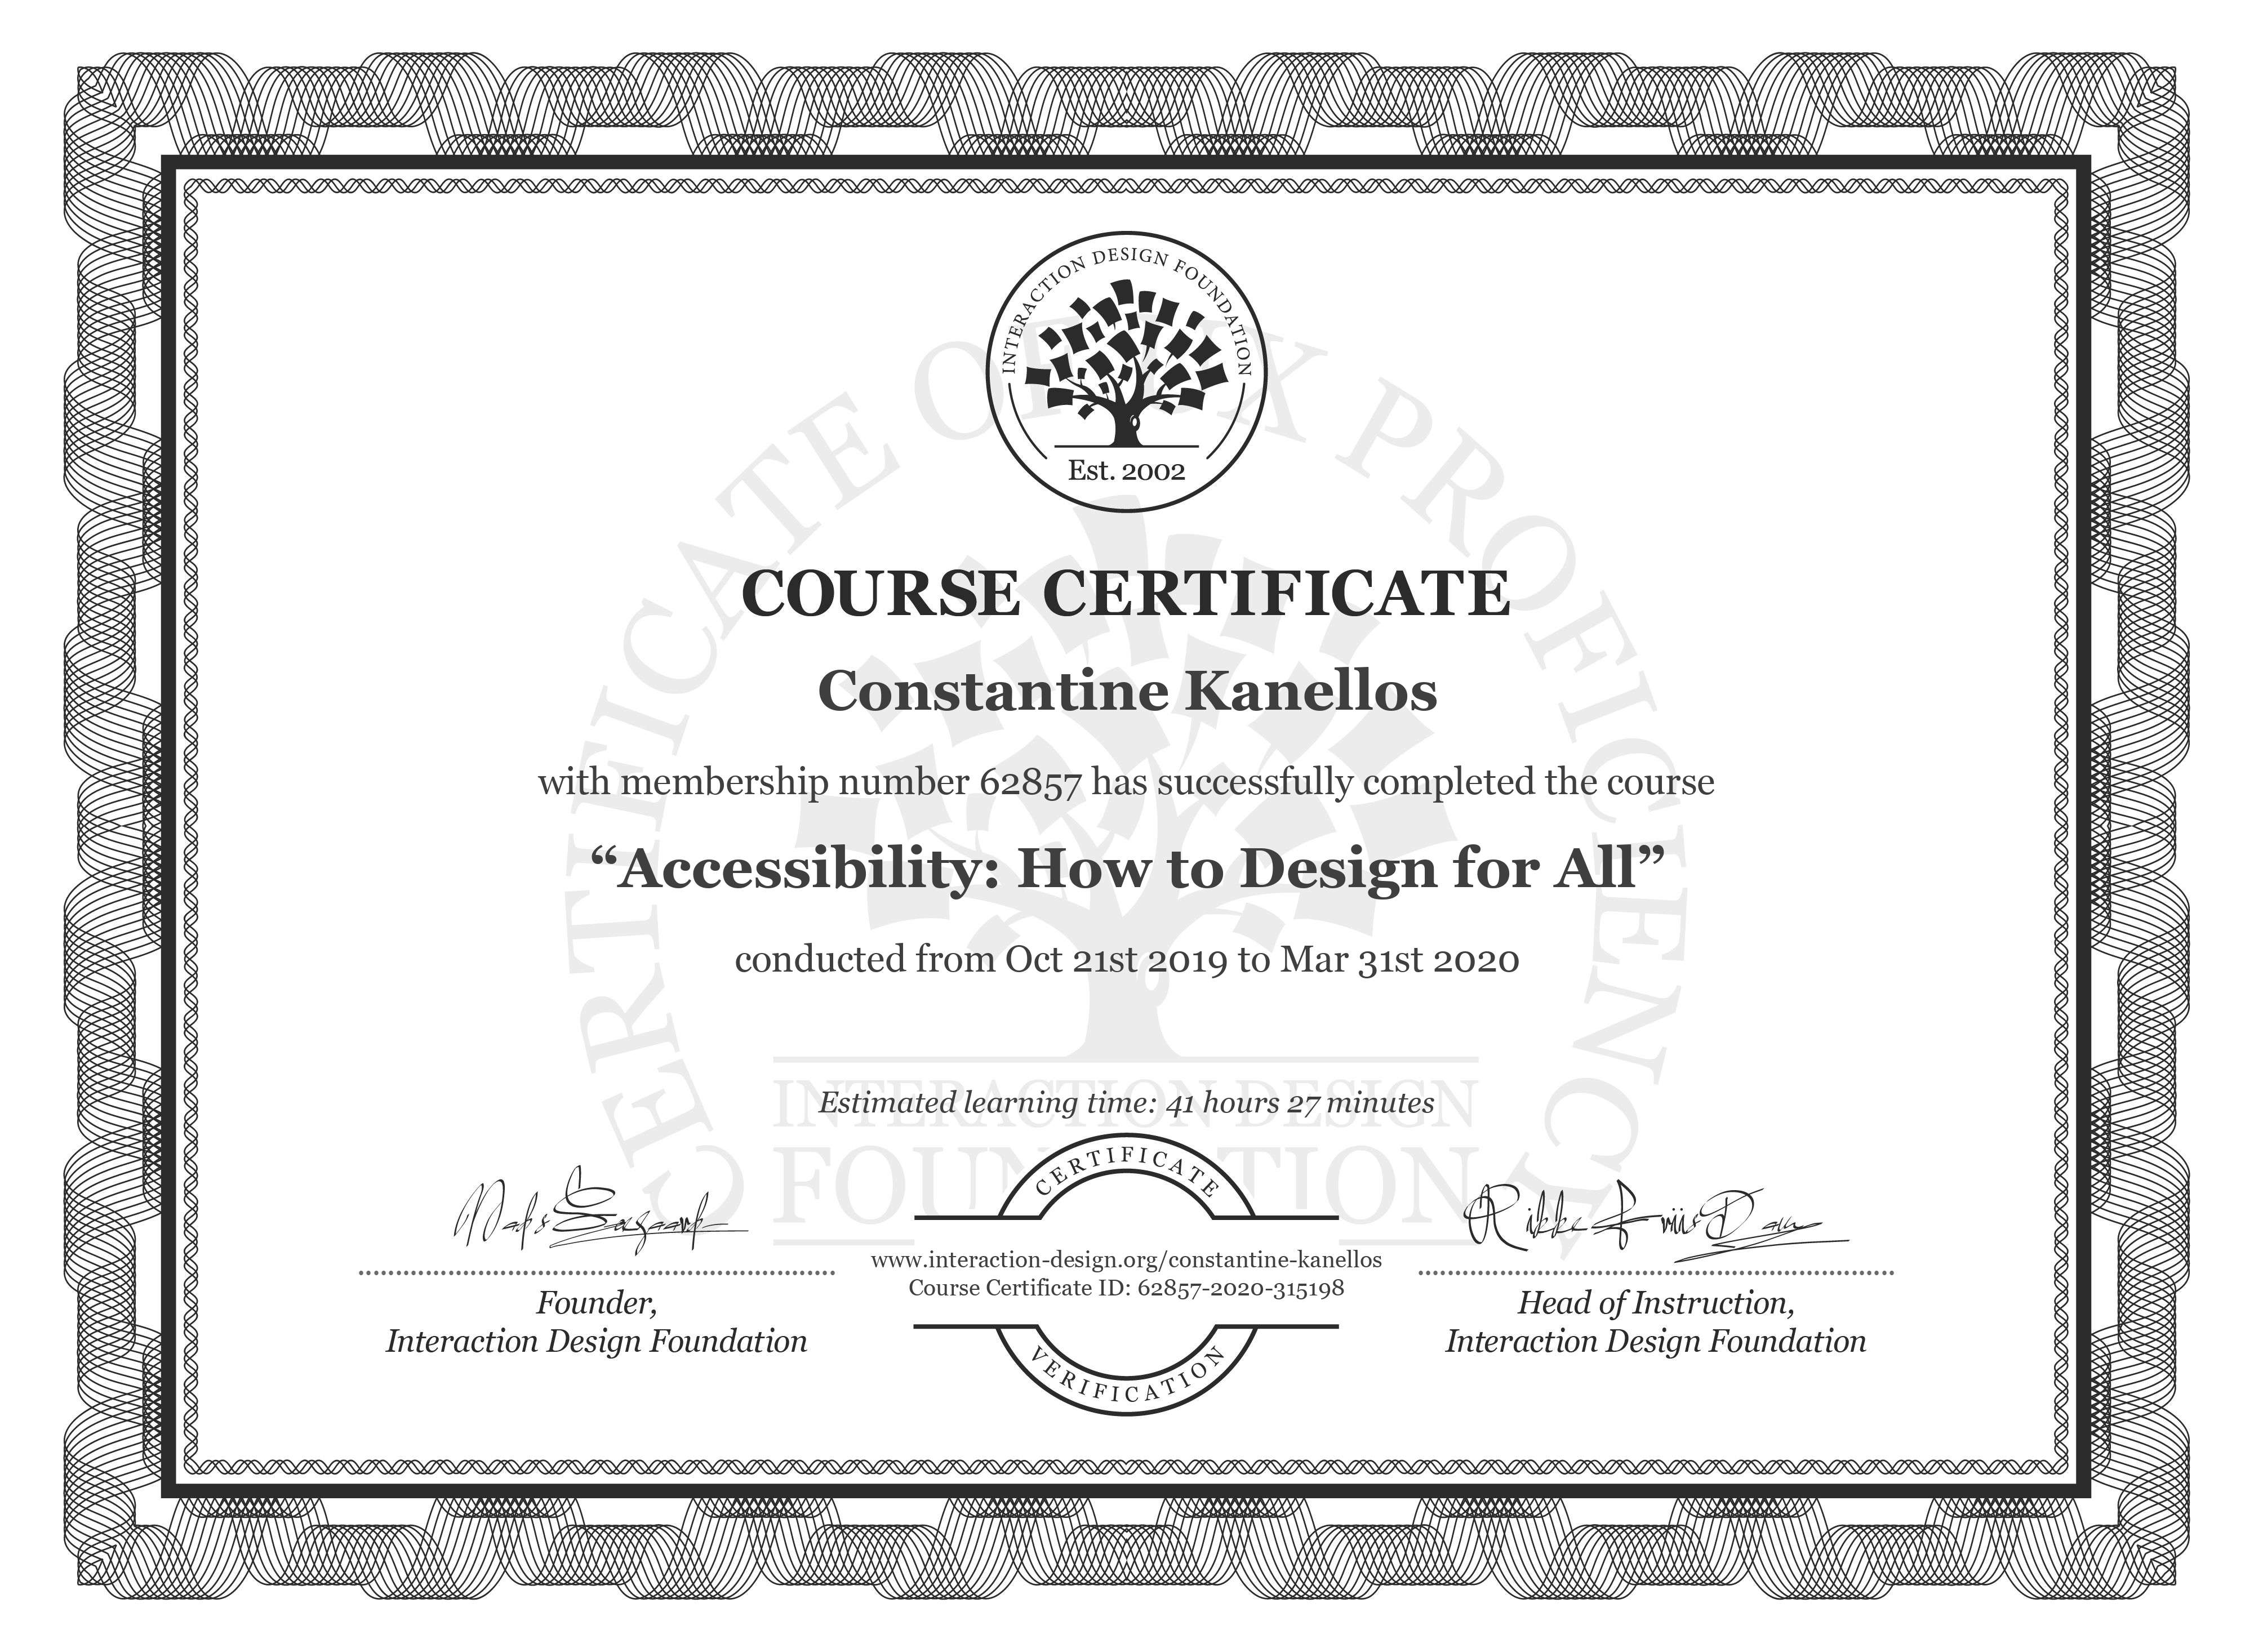 Constantine Kanellos's Course Certificate: Accessibility: How to Design for All